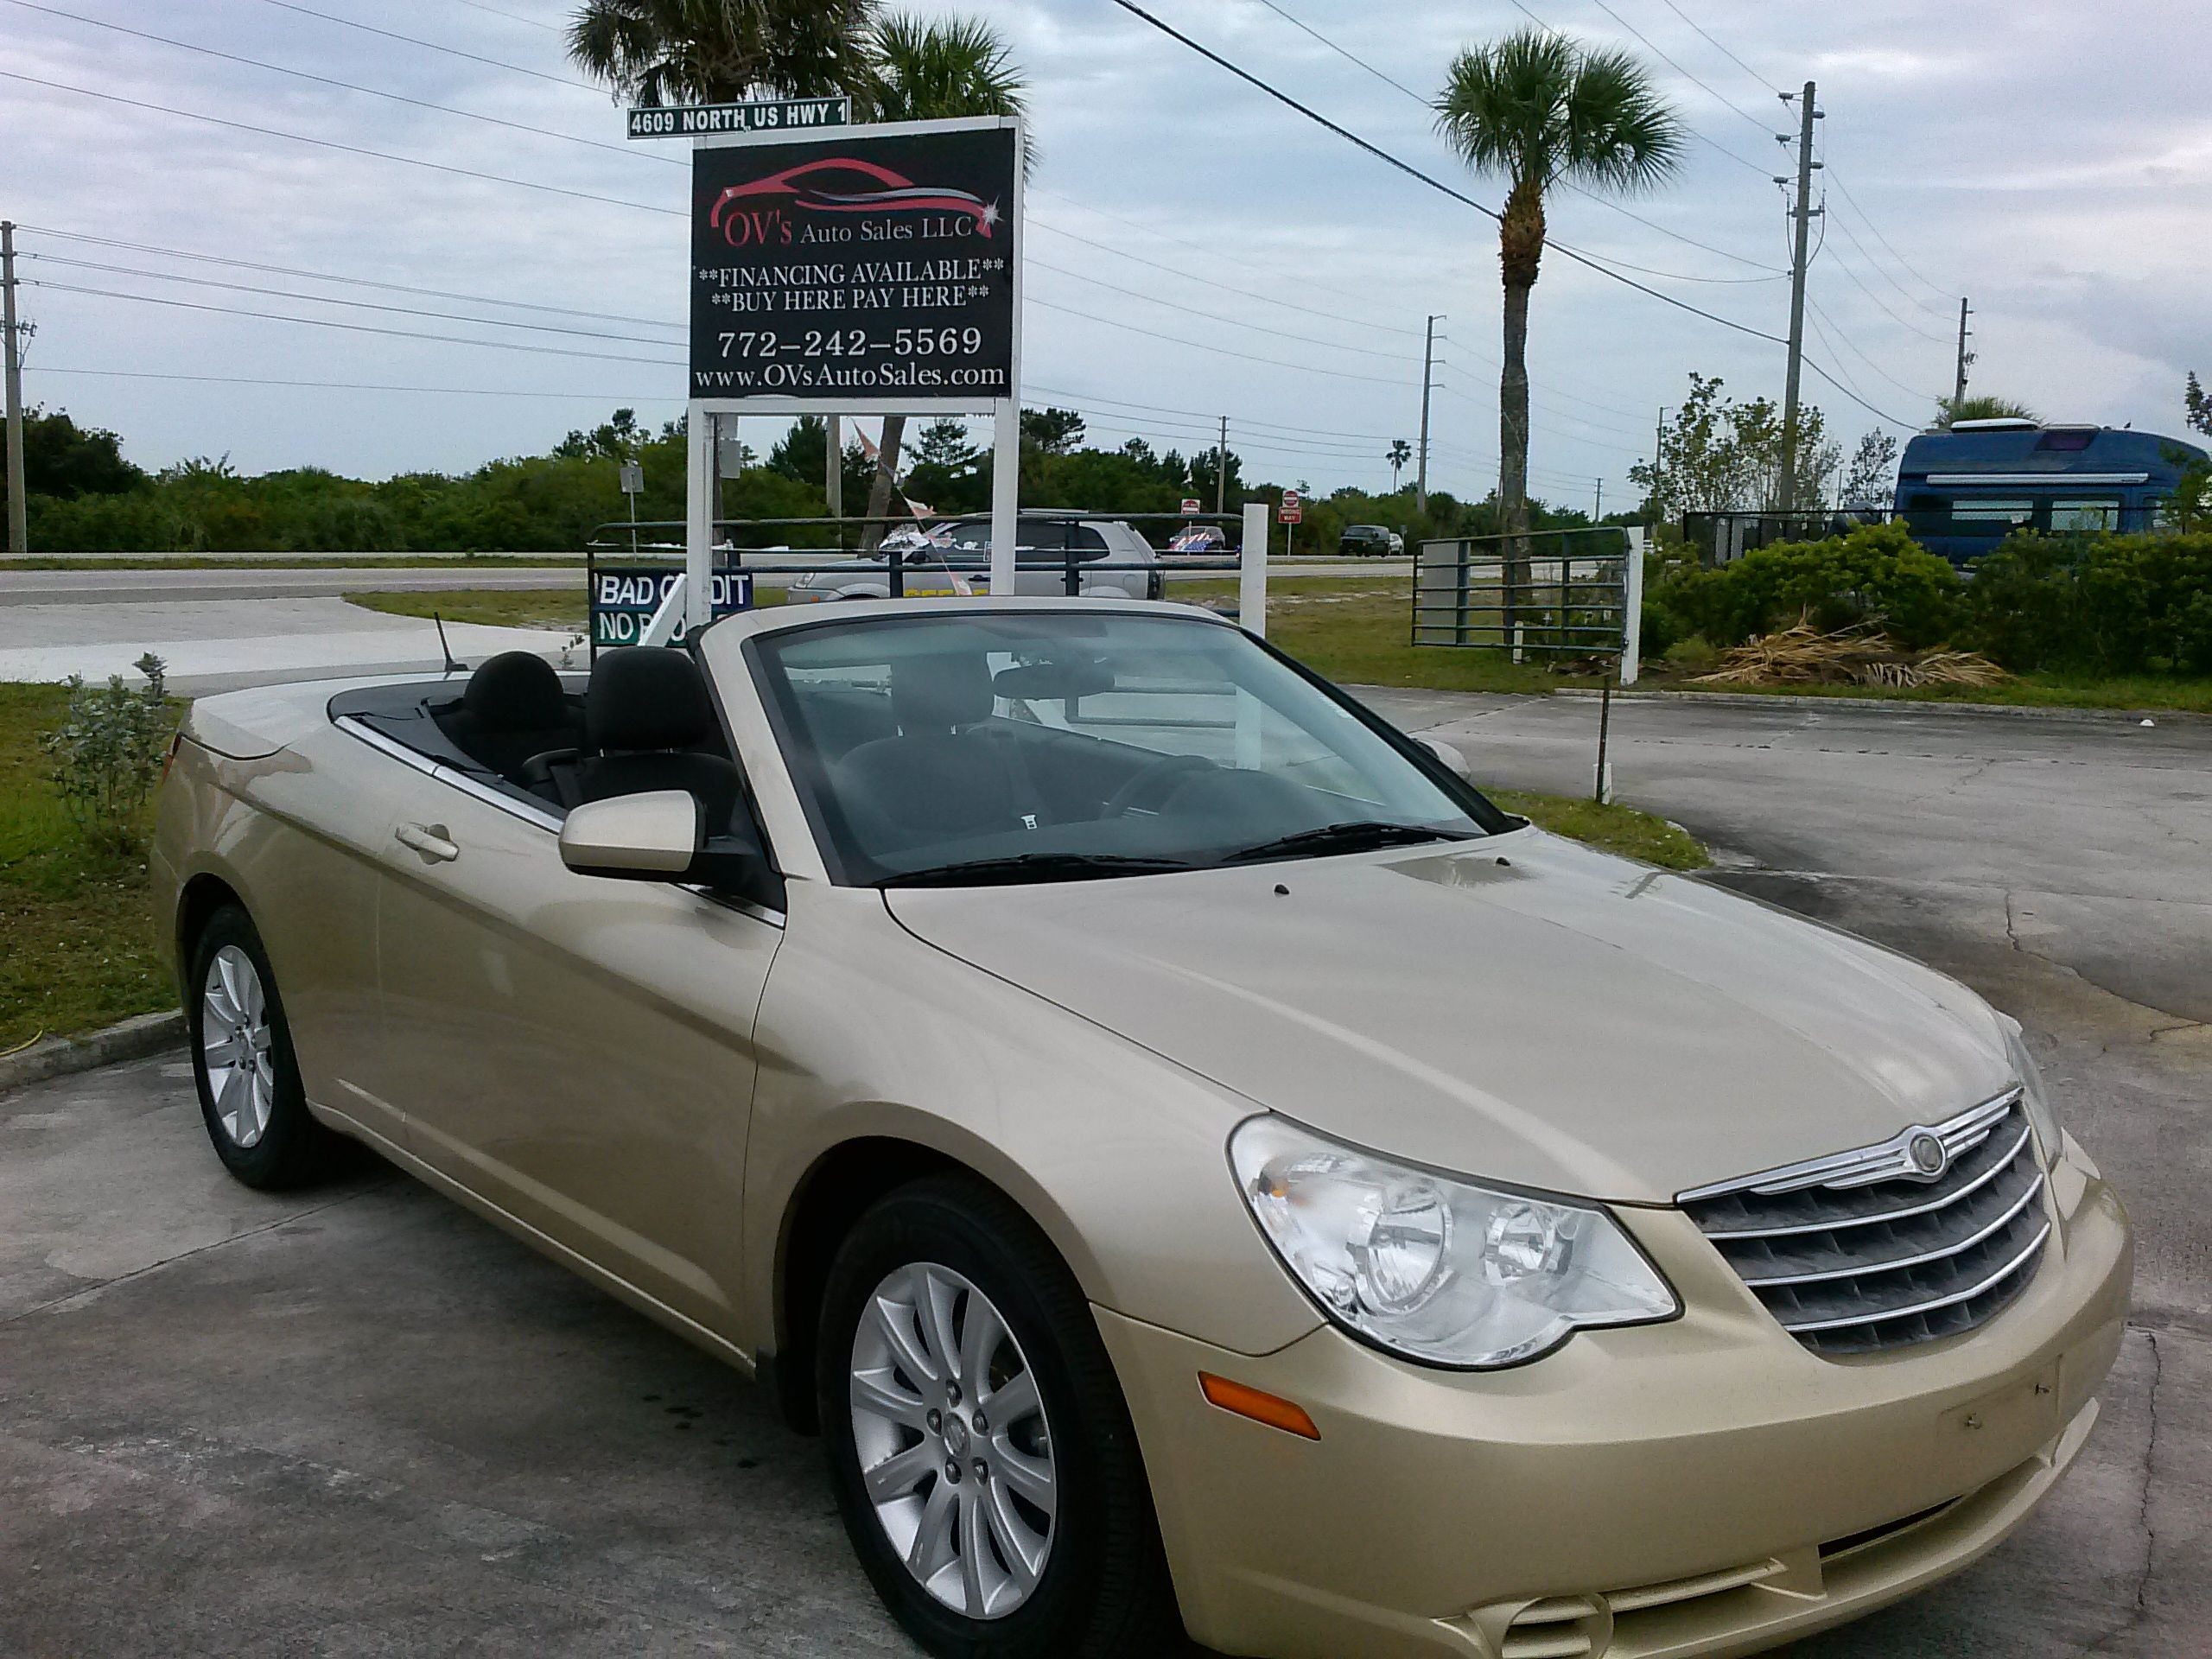 Sold Ovsautosales Chrysler Convertible Free Carfax Report Mileage 103 303 Excellent Condition Very Clean Down Cars For Sale Chrysler Sebring Chrysler